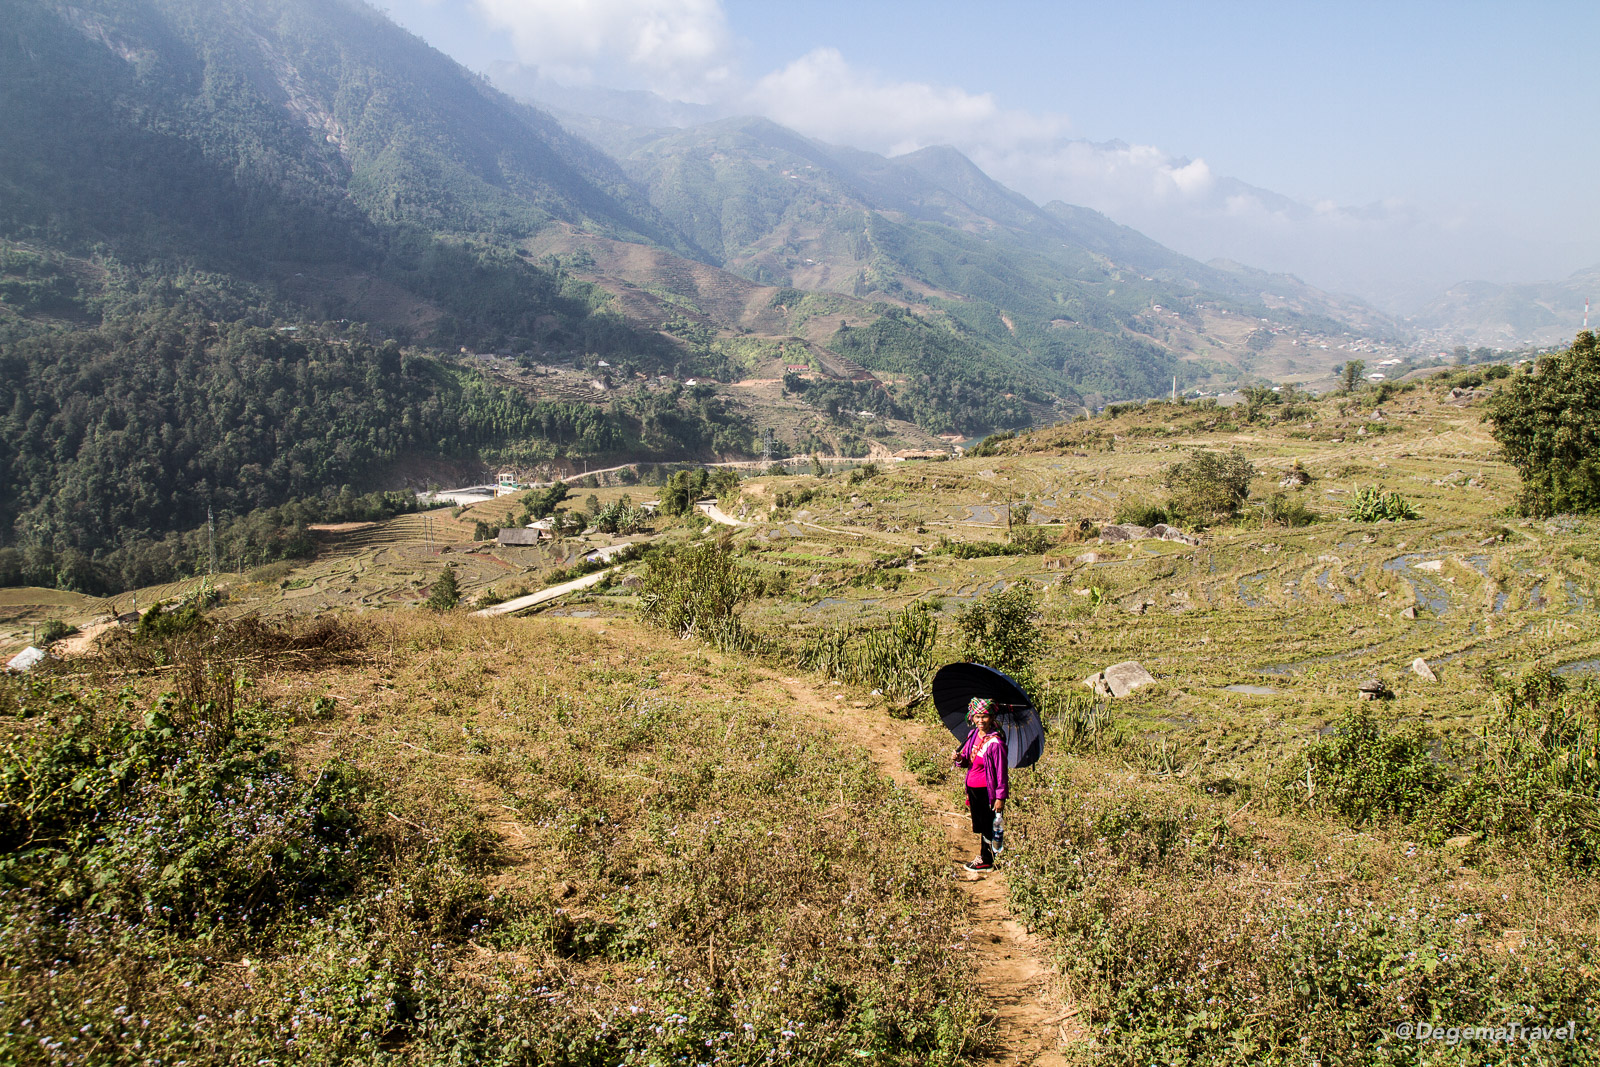 Mama Chu in the Mường Hoa Valley near Sapa, Vietnam